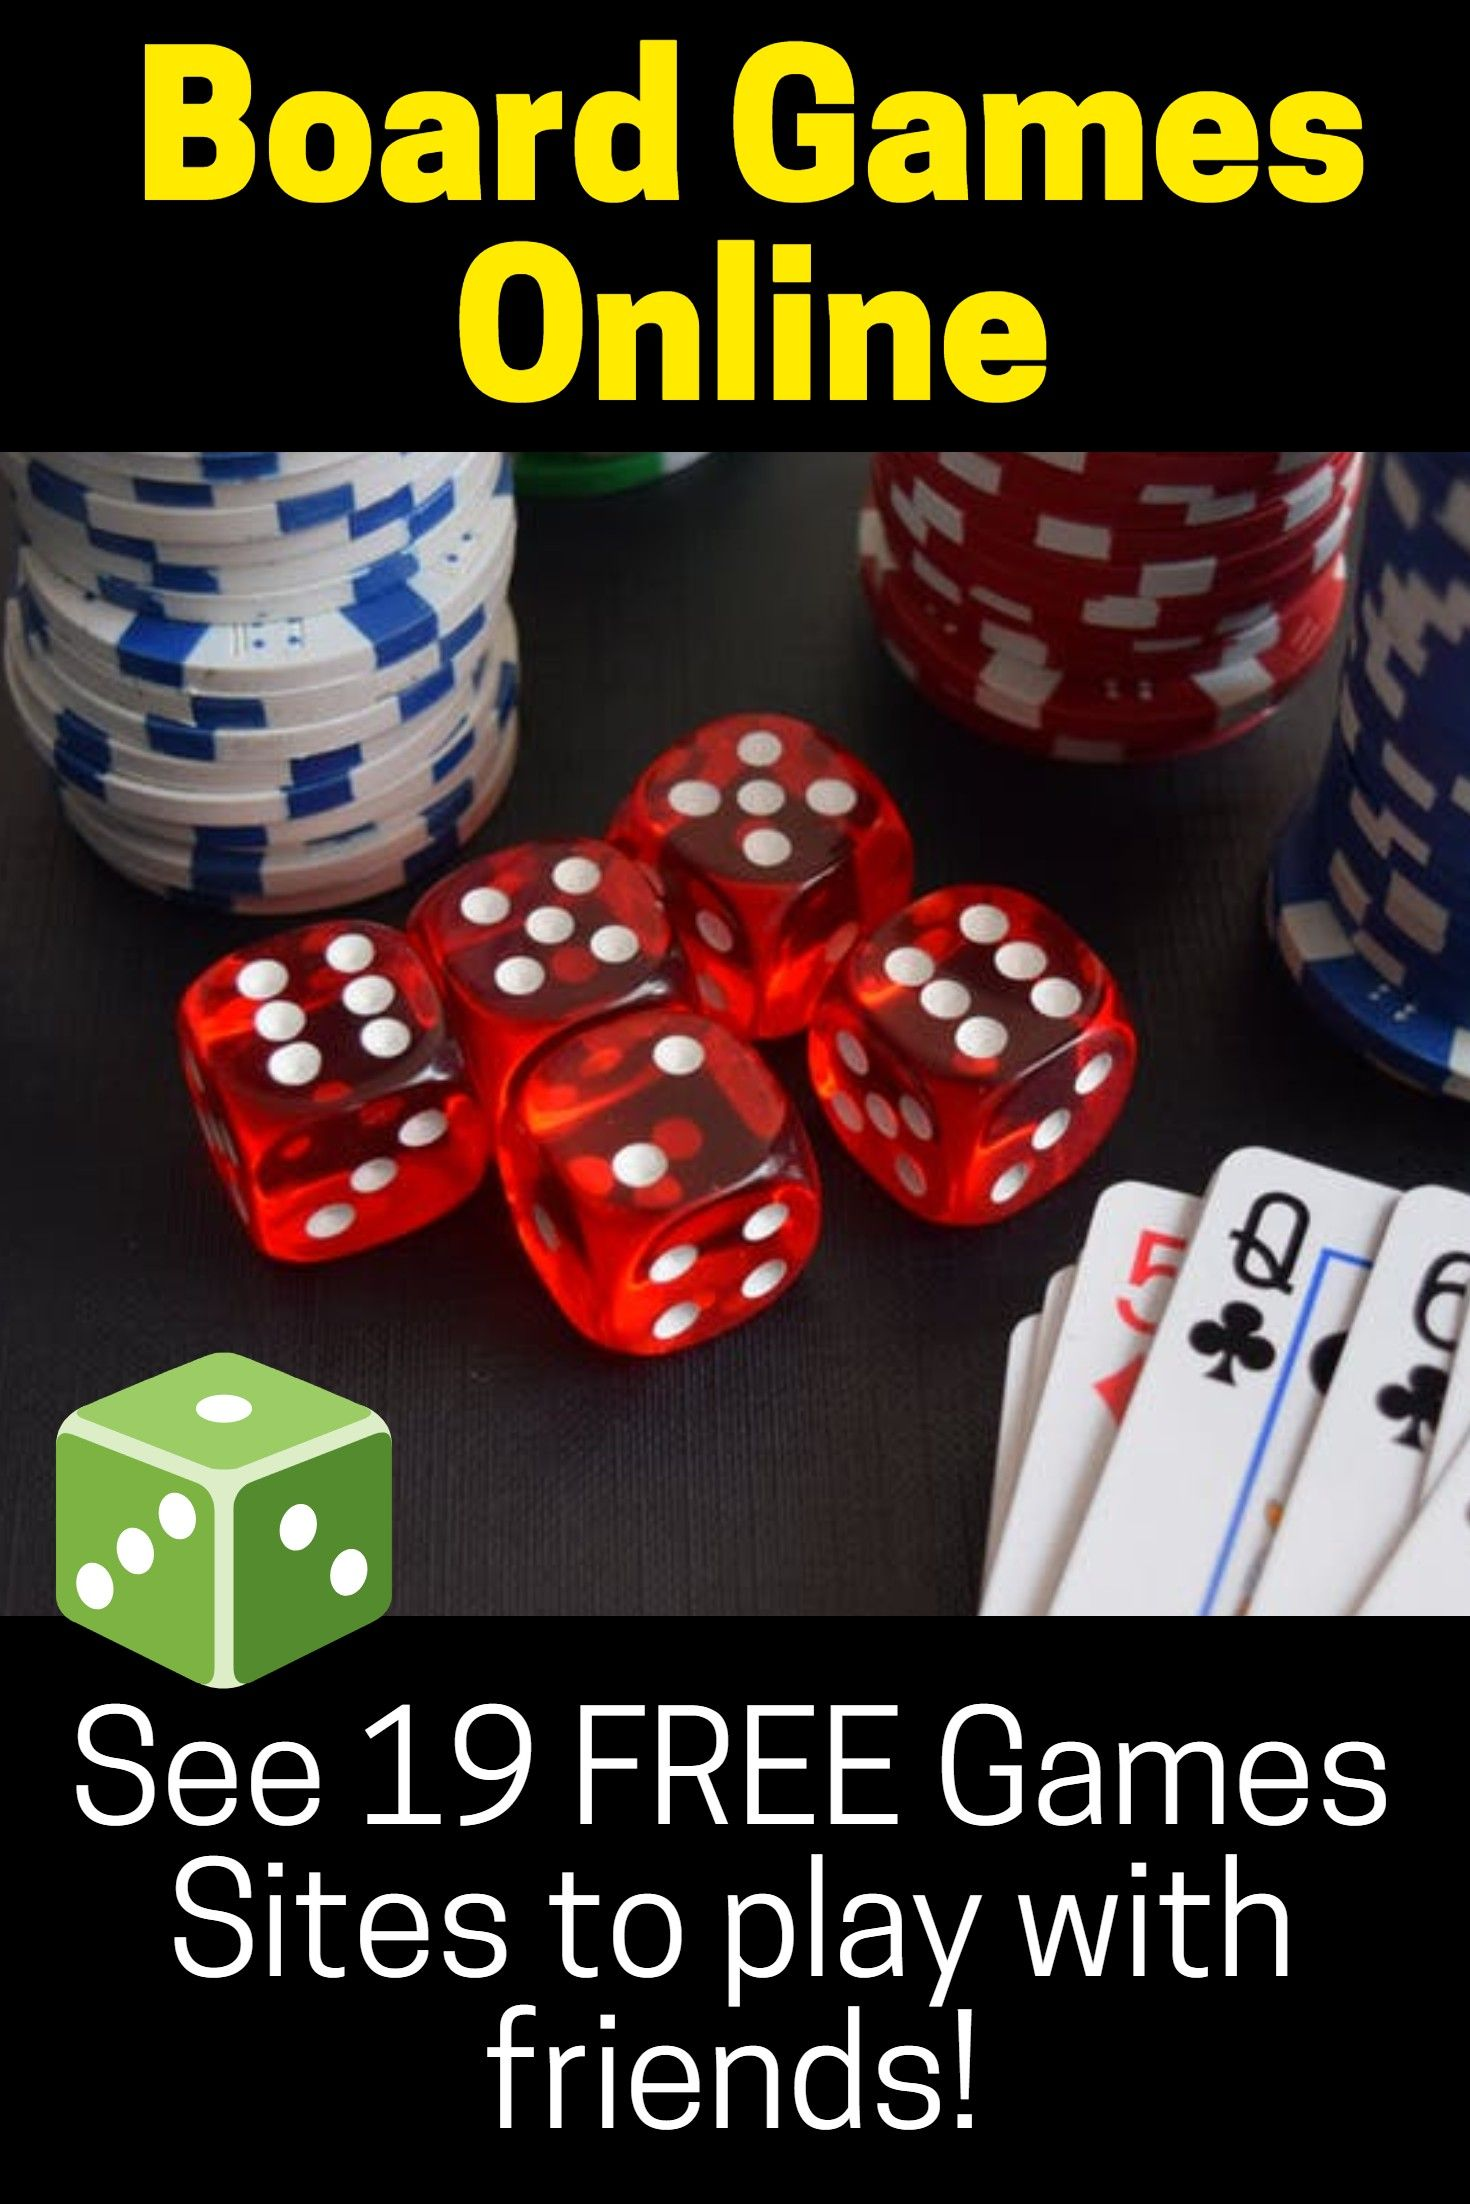 BOARD GAMES ONLINE See [19 FREE Games Sites] to play with